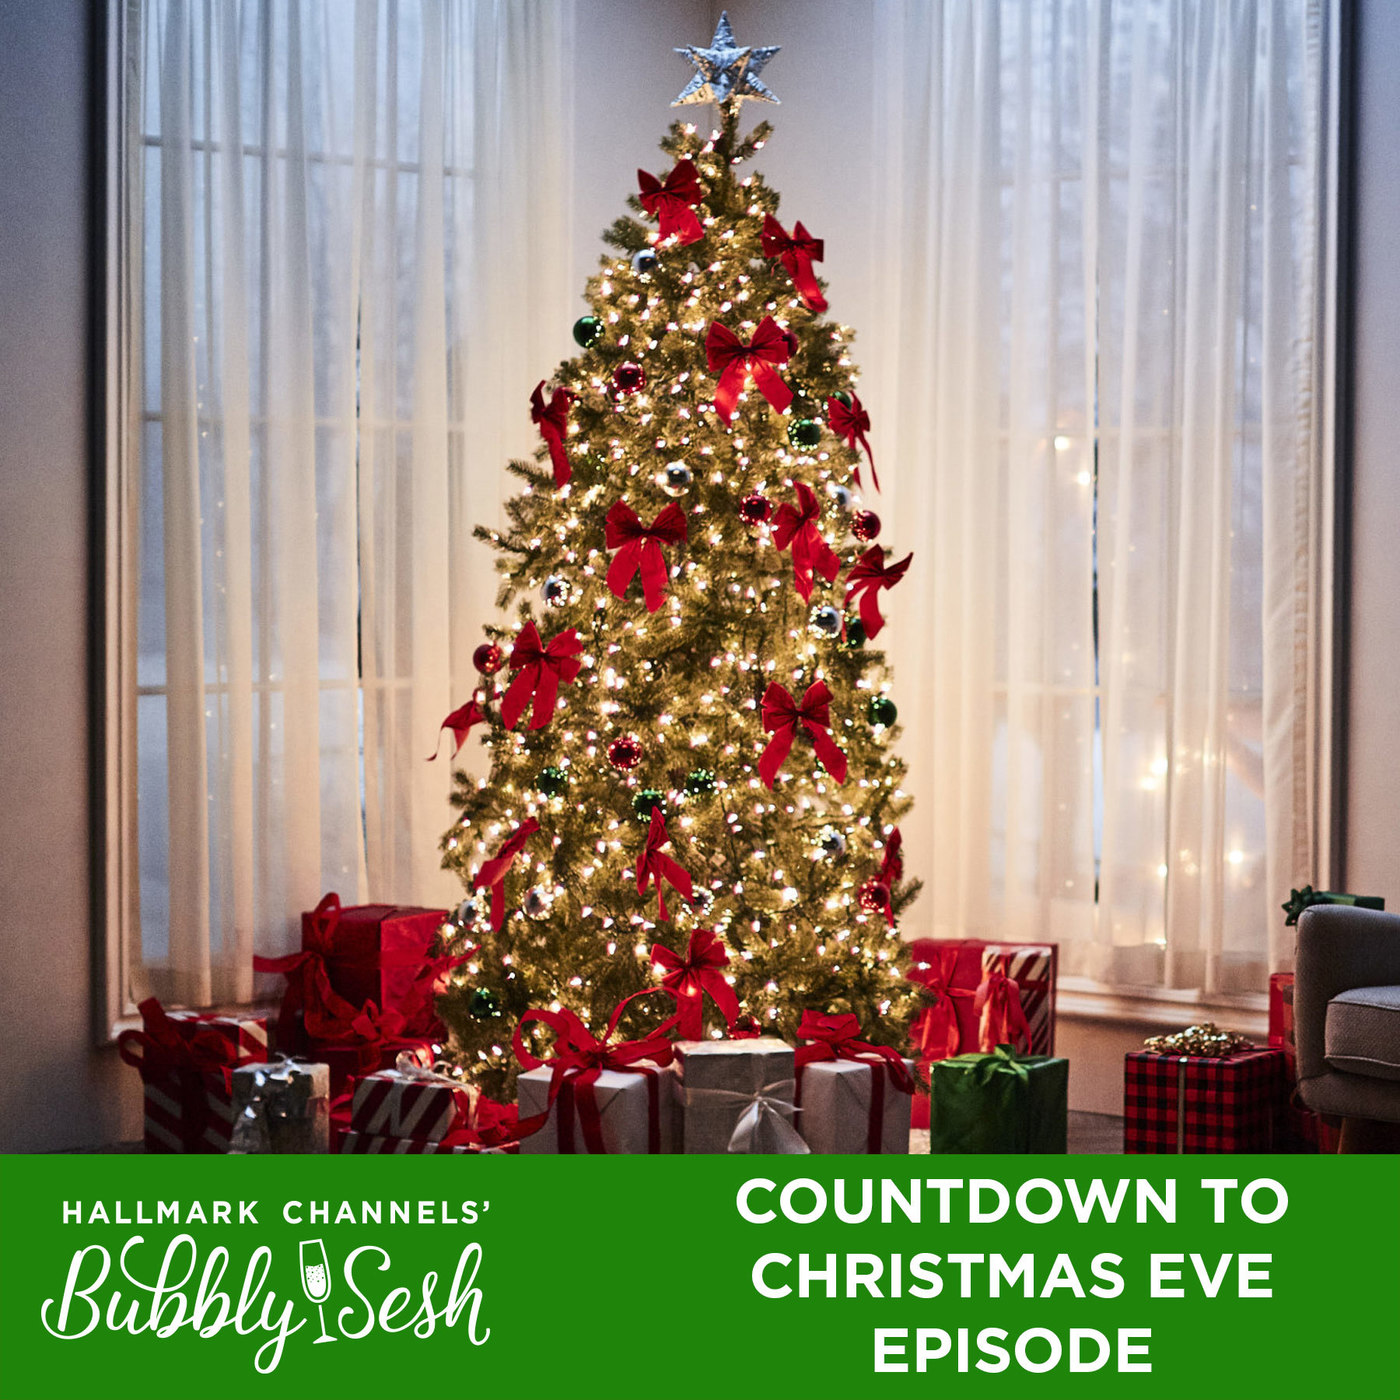 Countdown to Christmas Eve with special guests Emily Hutchinson, Bill Abbott and Michelle Vicary